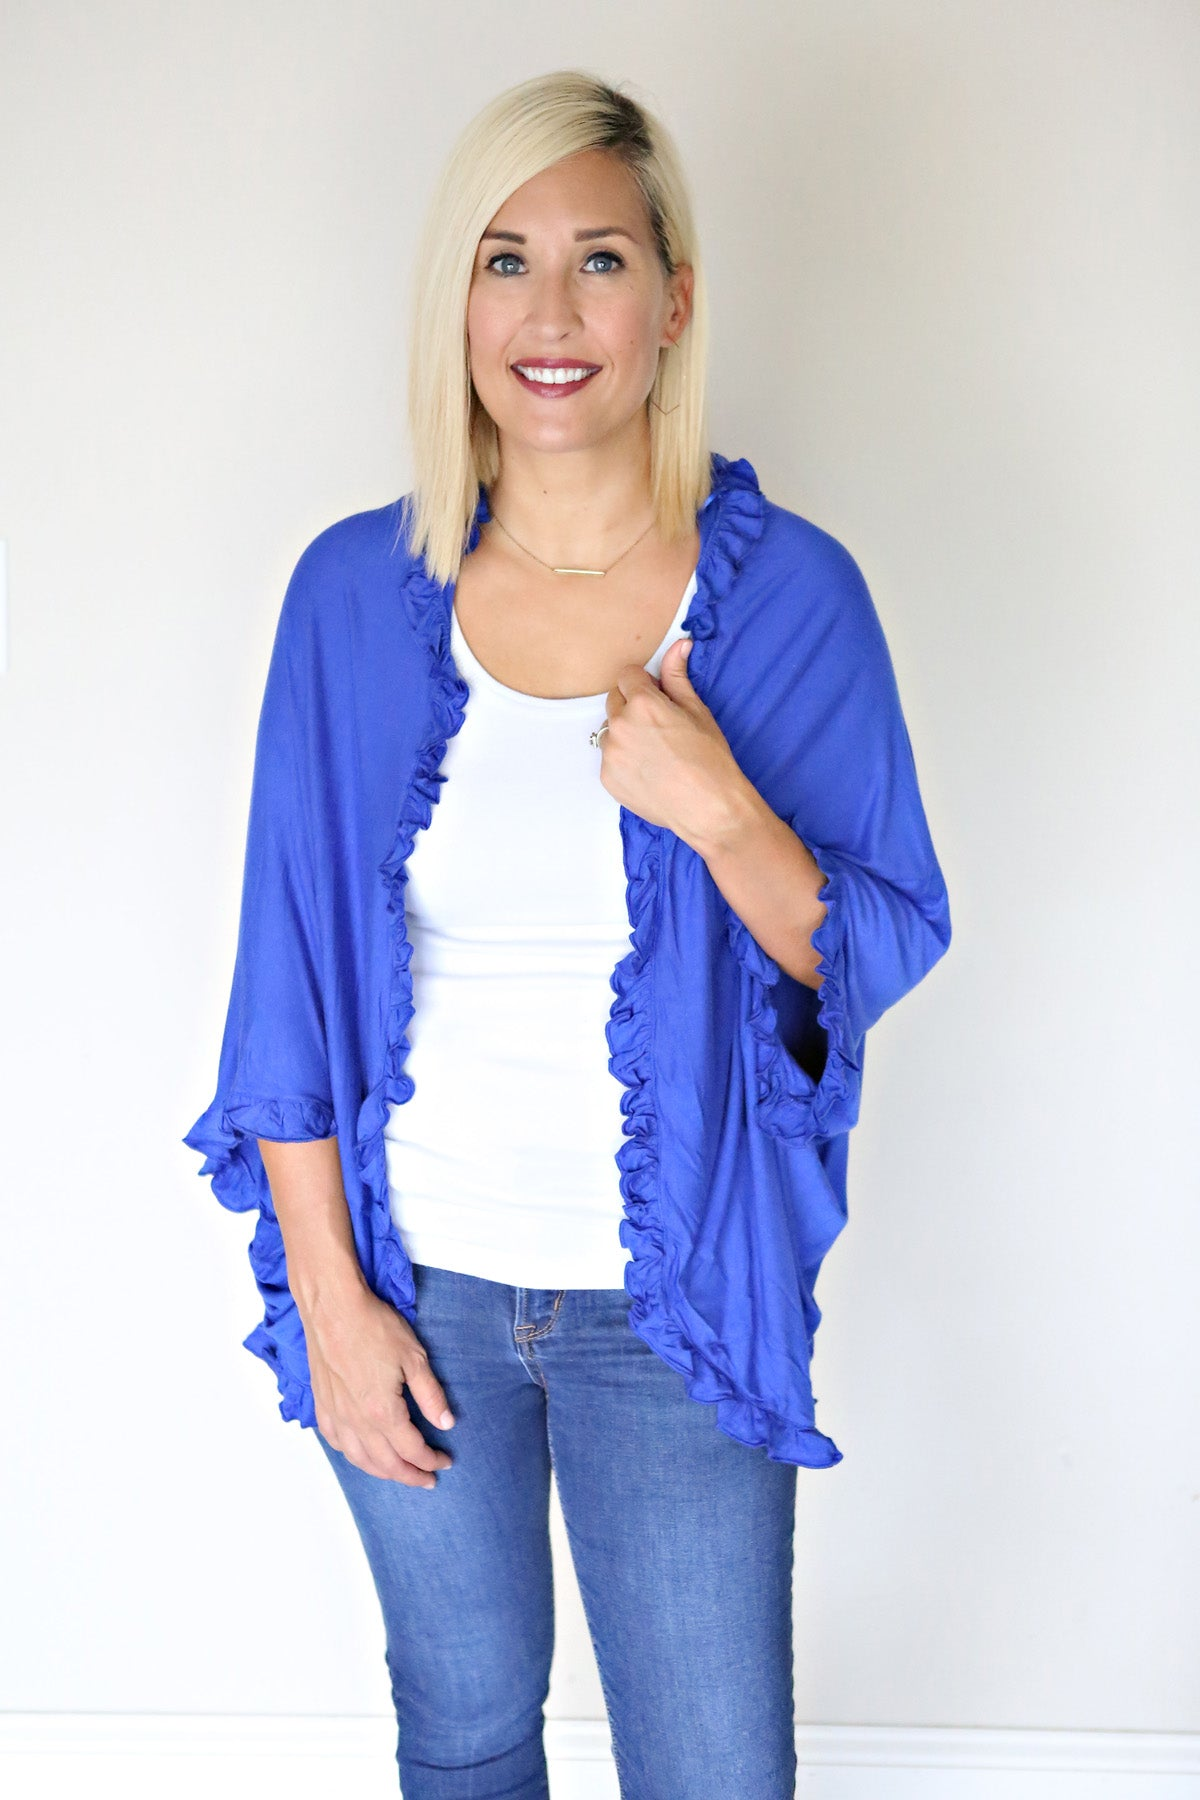 Jude Cardigan - Royal Blue - FINAL SALE - Gray Monroe